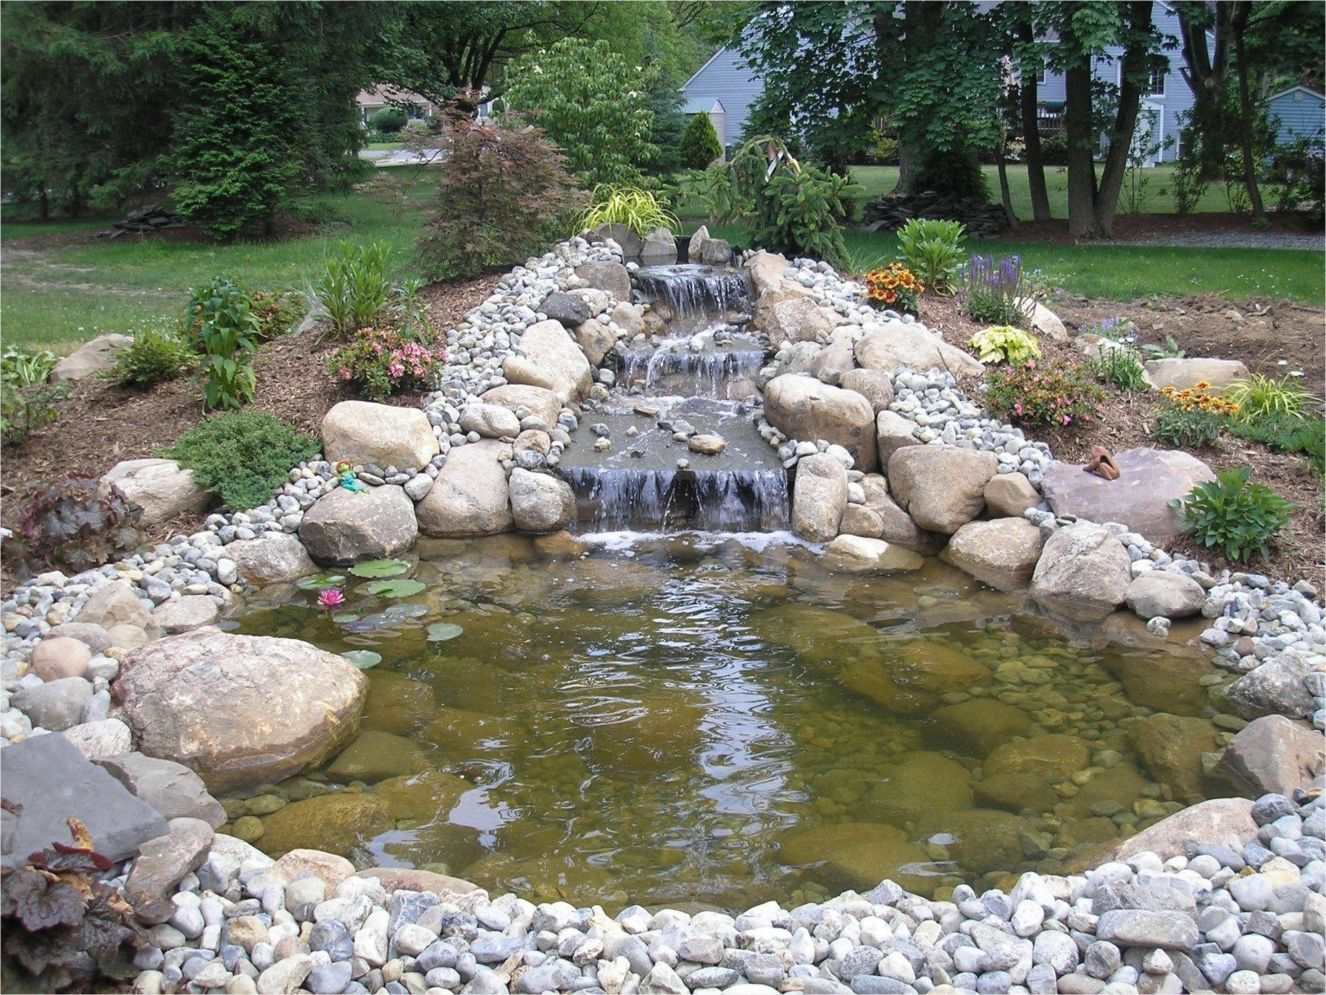 Inspiring small fish pond designs to upgrade the outdoor landscape for more lively and refreshing Image 30